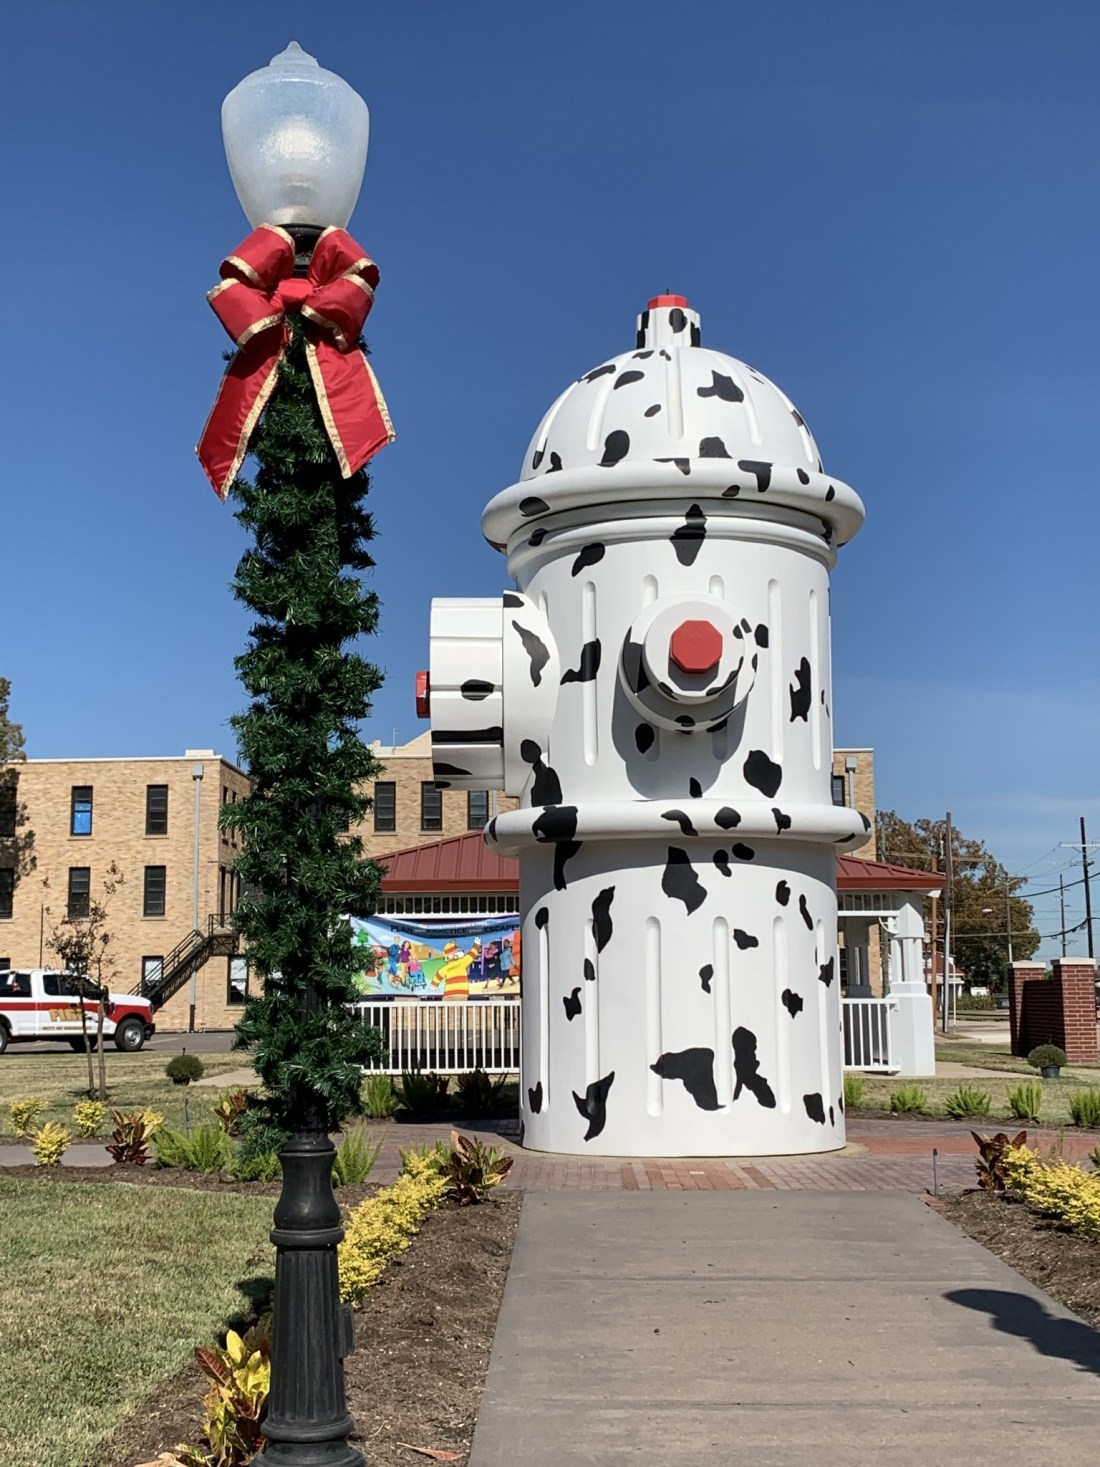 Giant fire hydrant